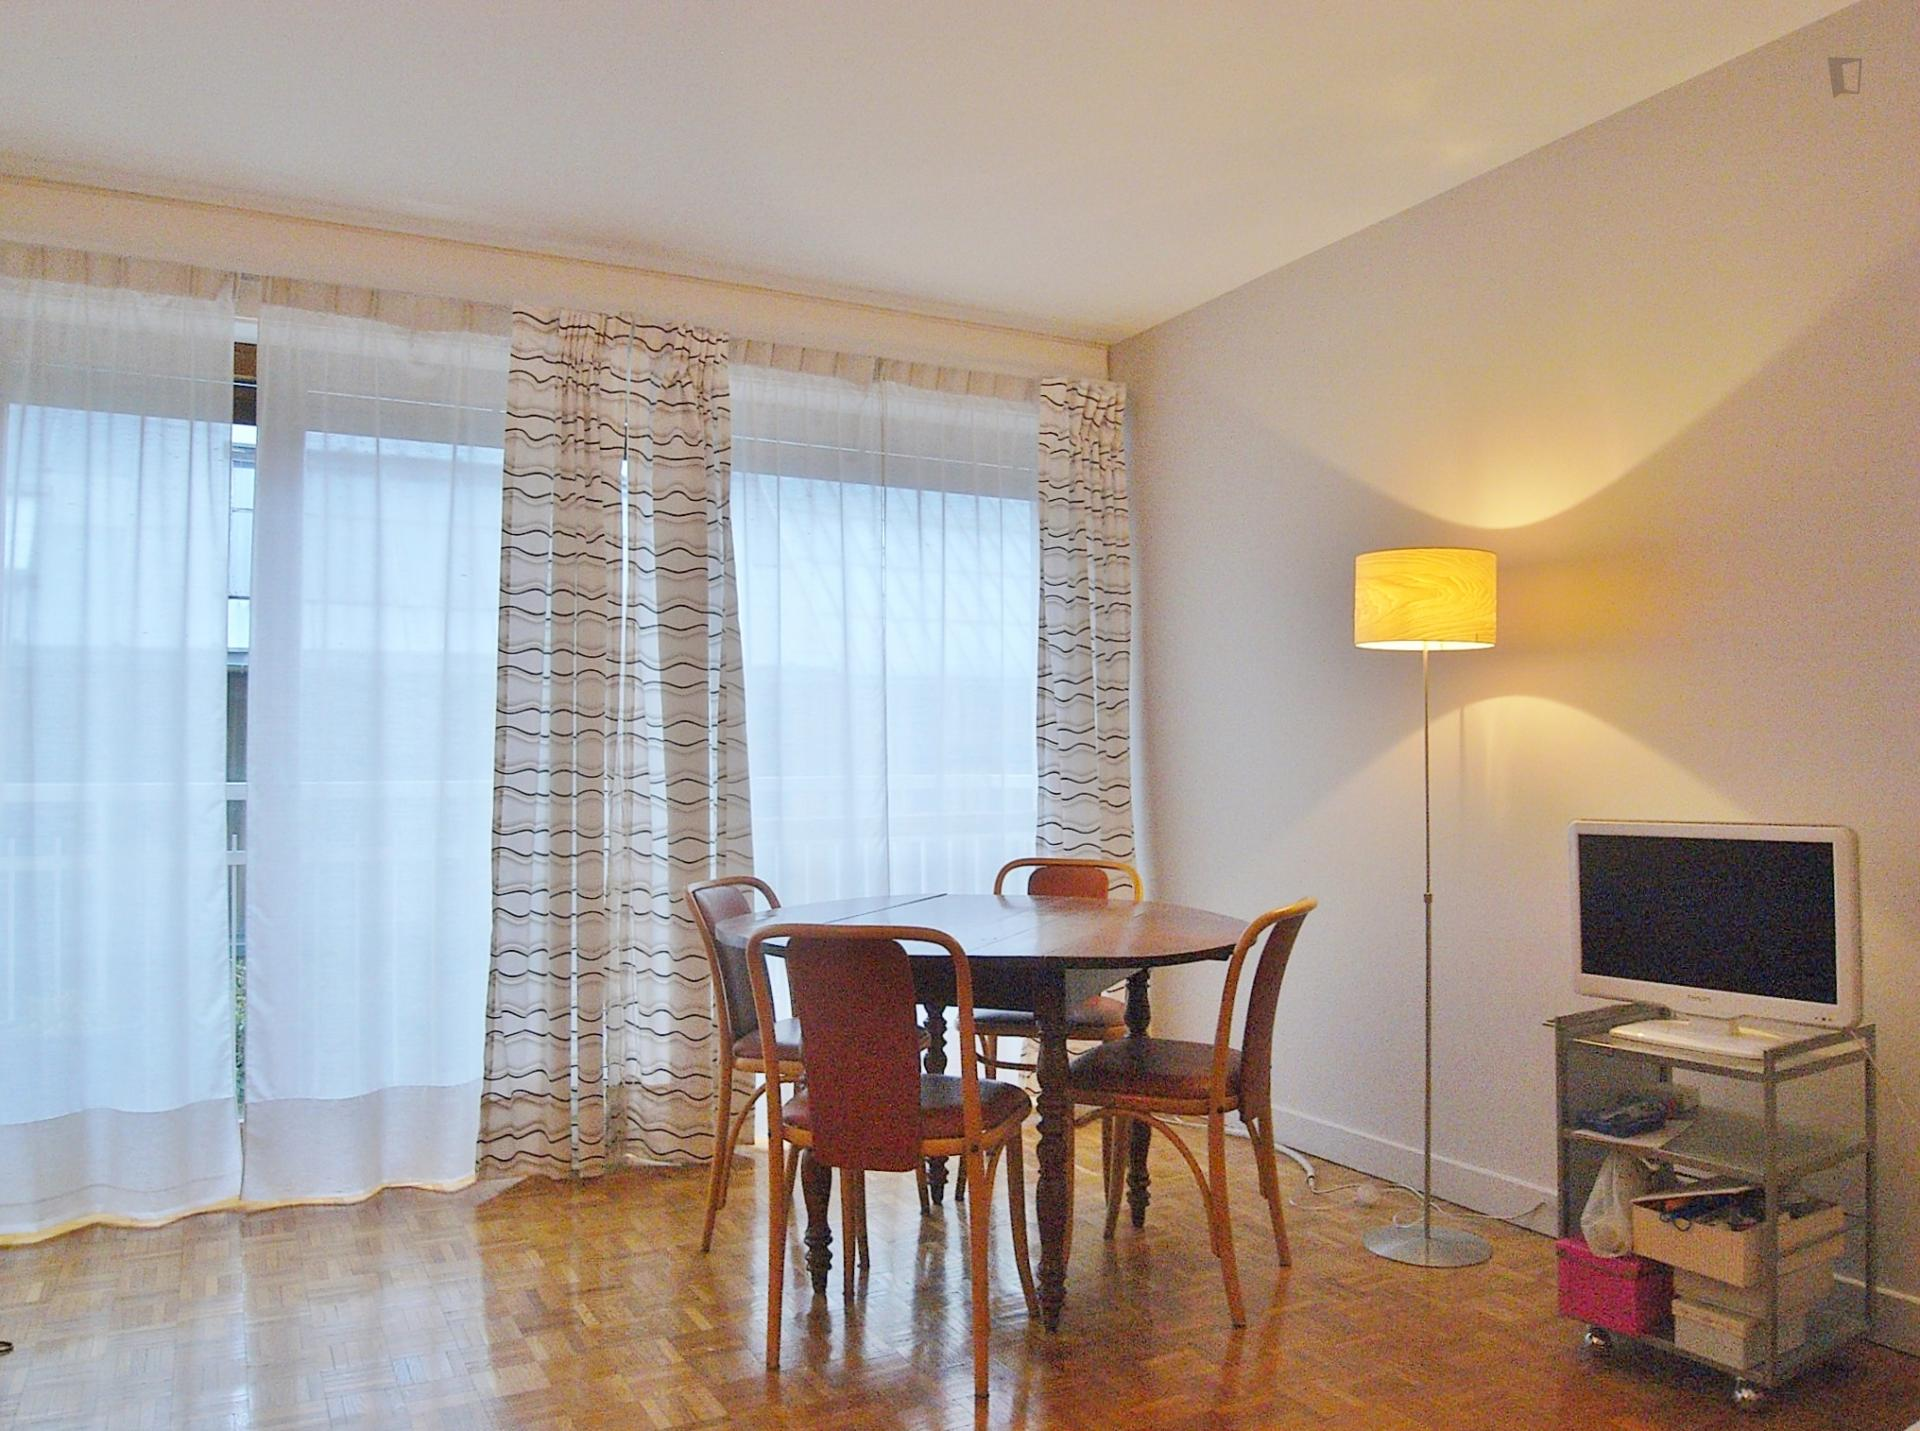 D'Alesia - Nice flat for expats in Paris